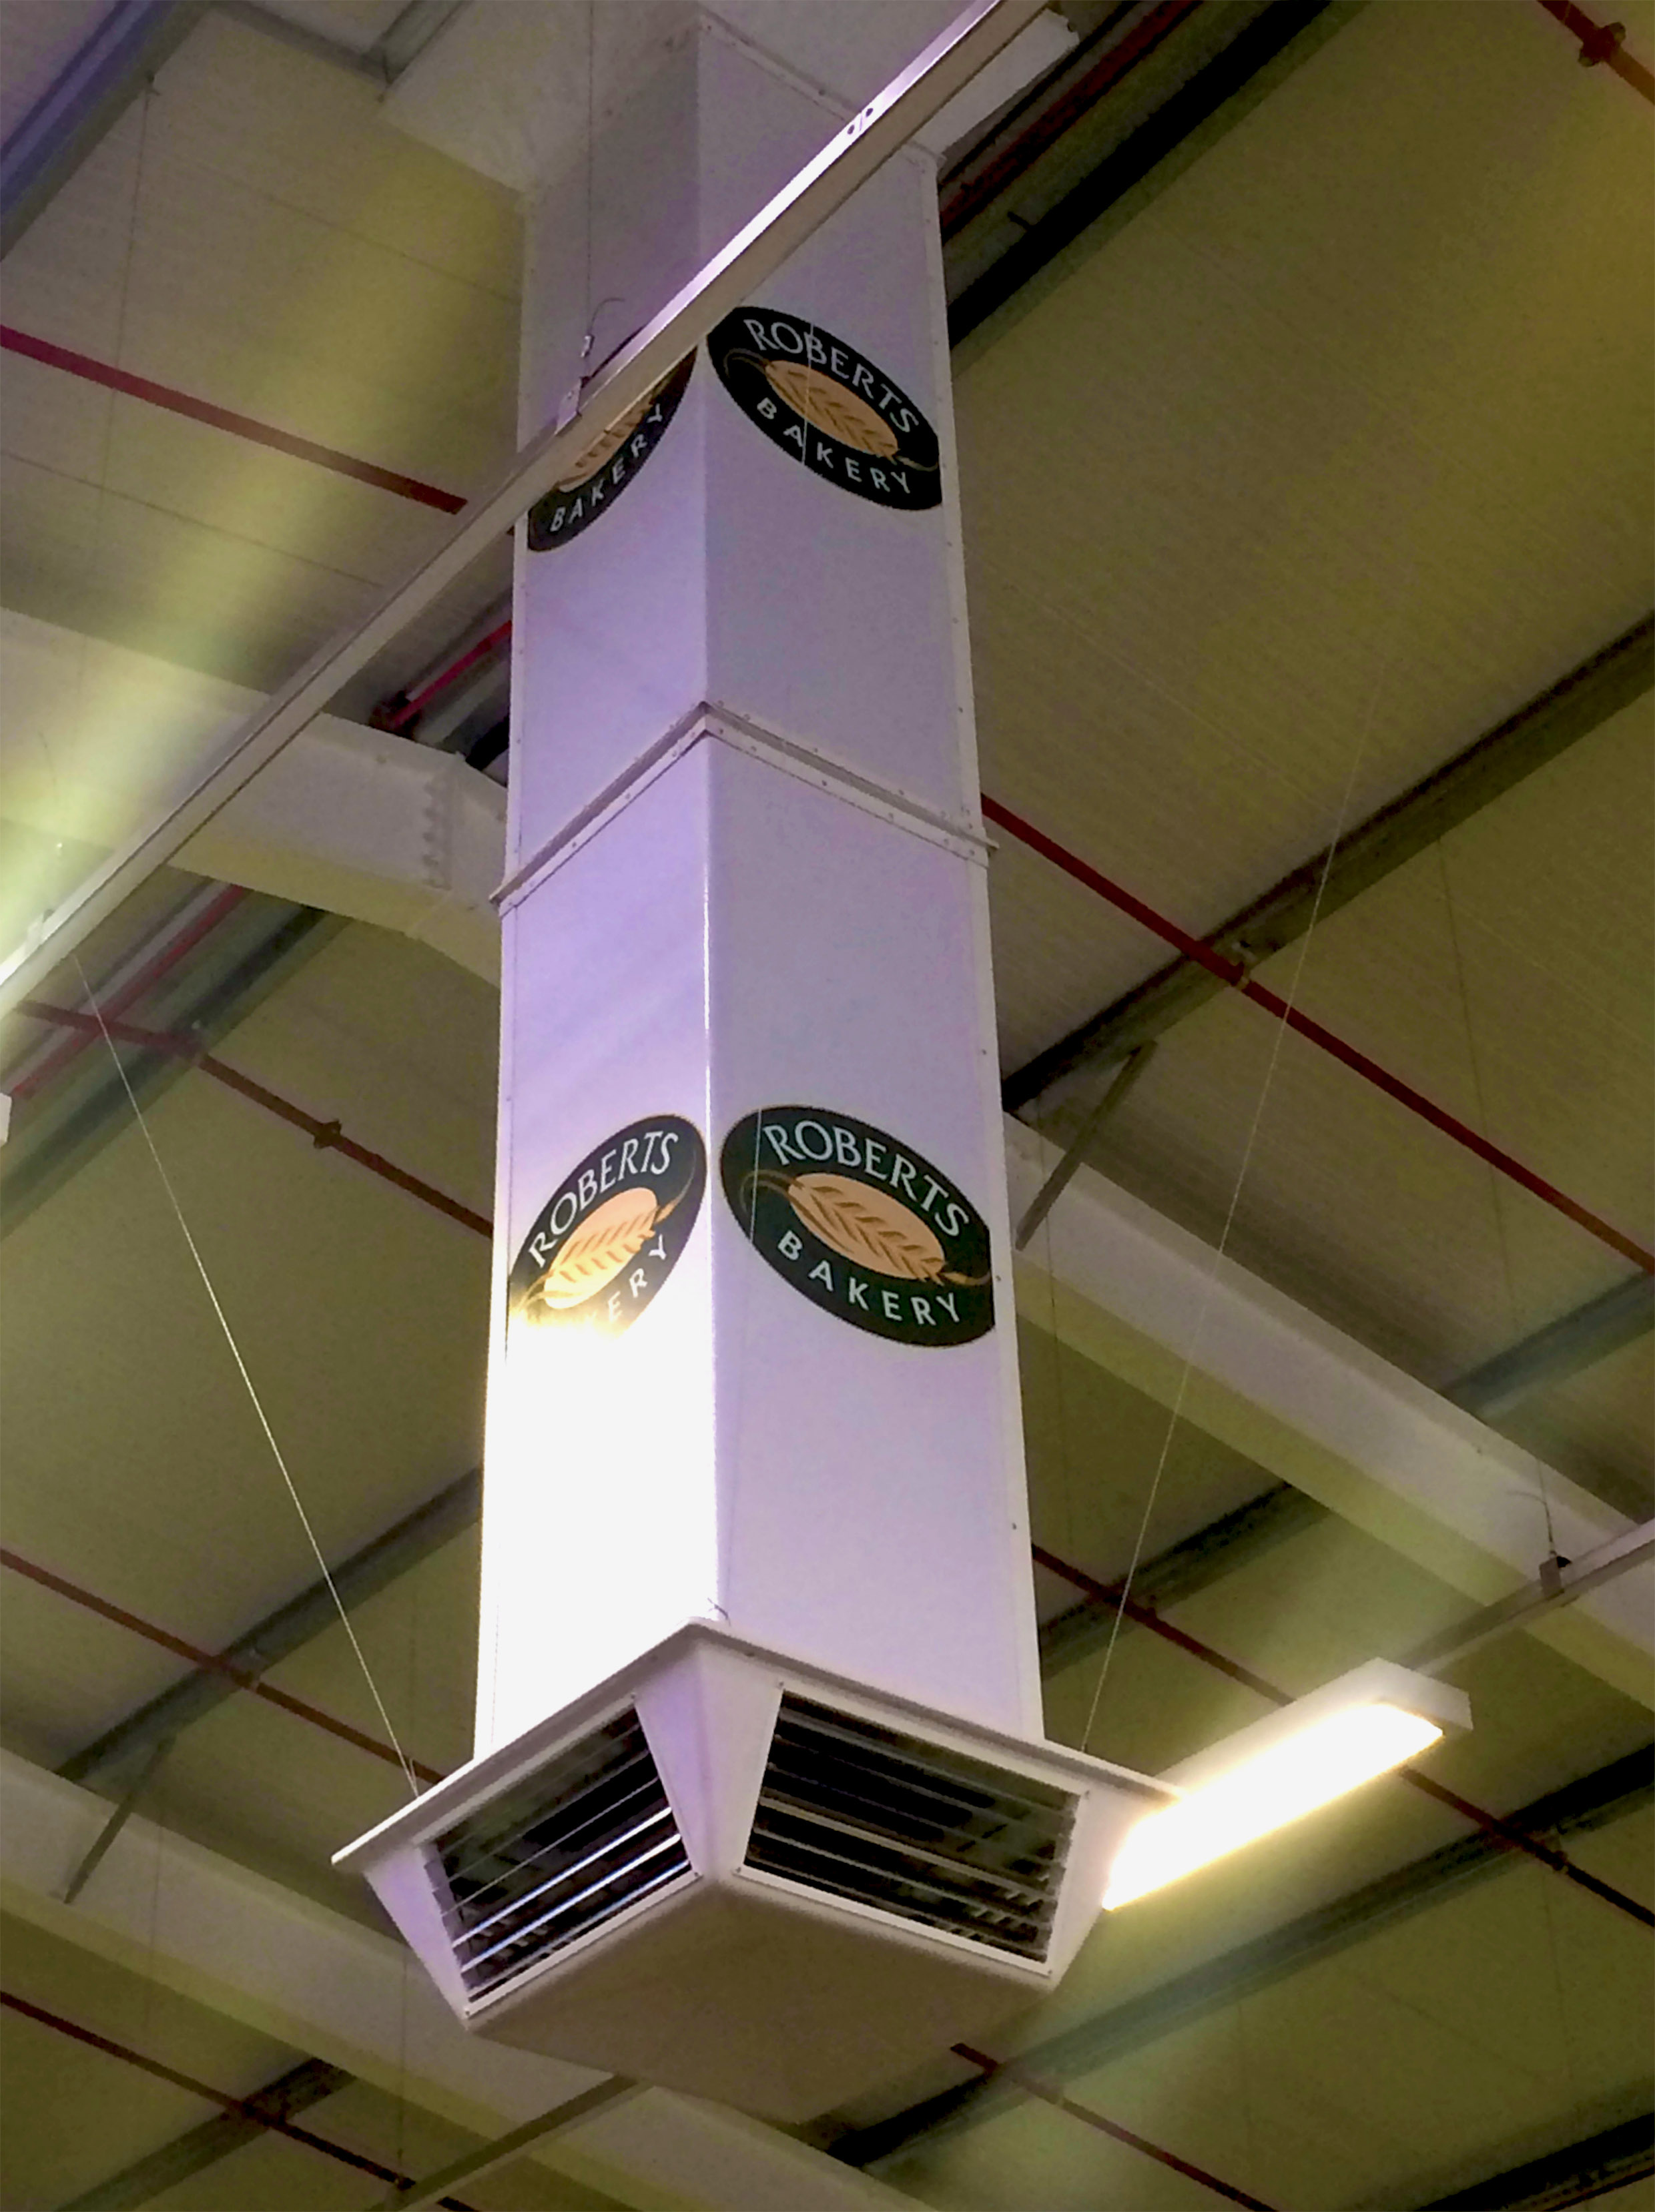 Innovative ductwork system installation roberts bakery for New and innovative heating and cooling system design